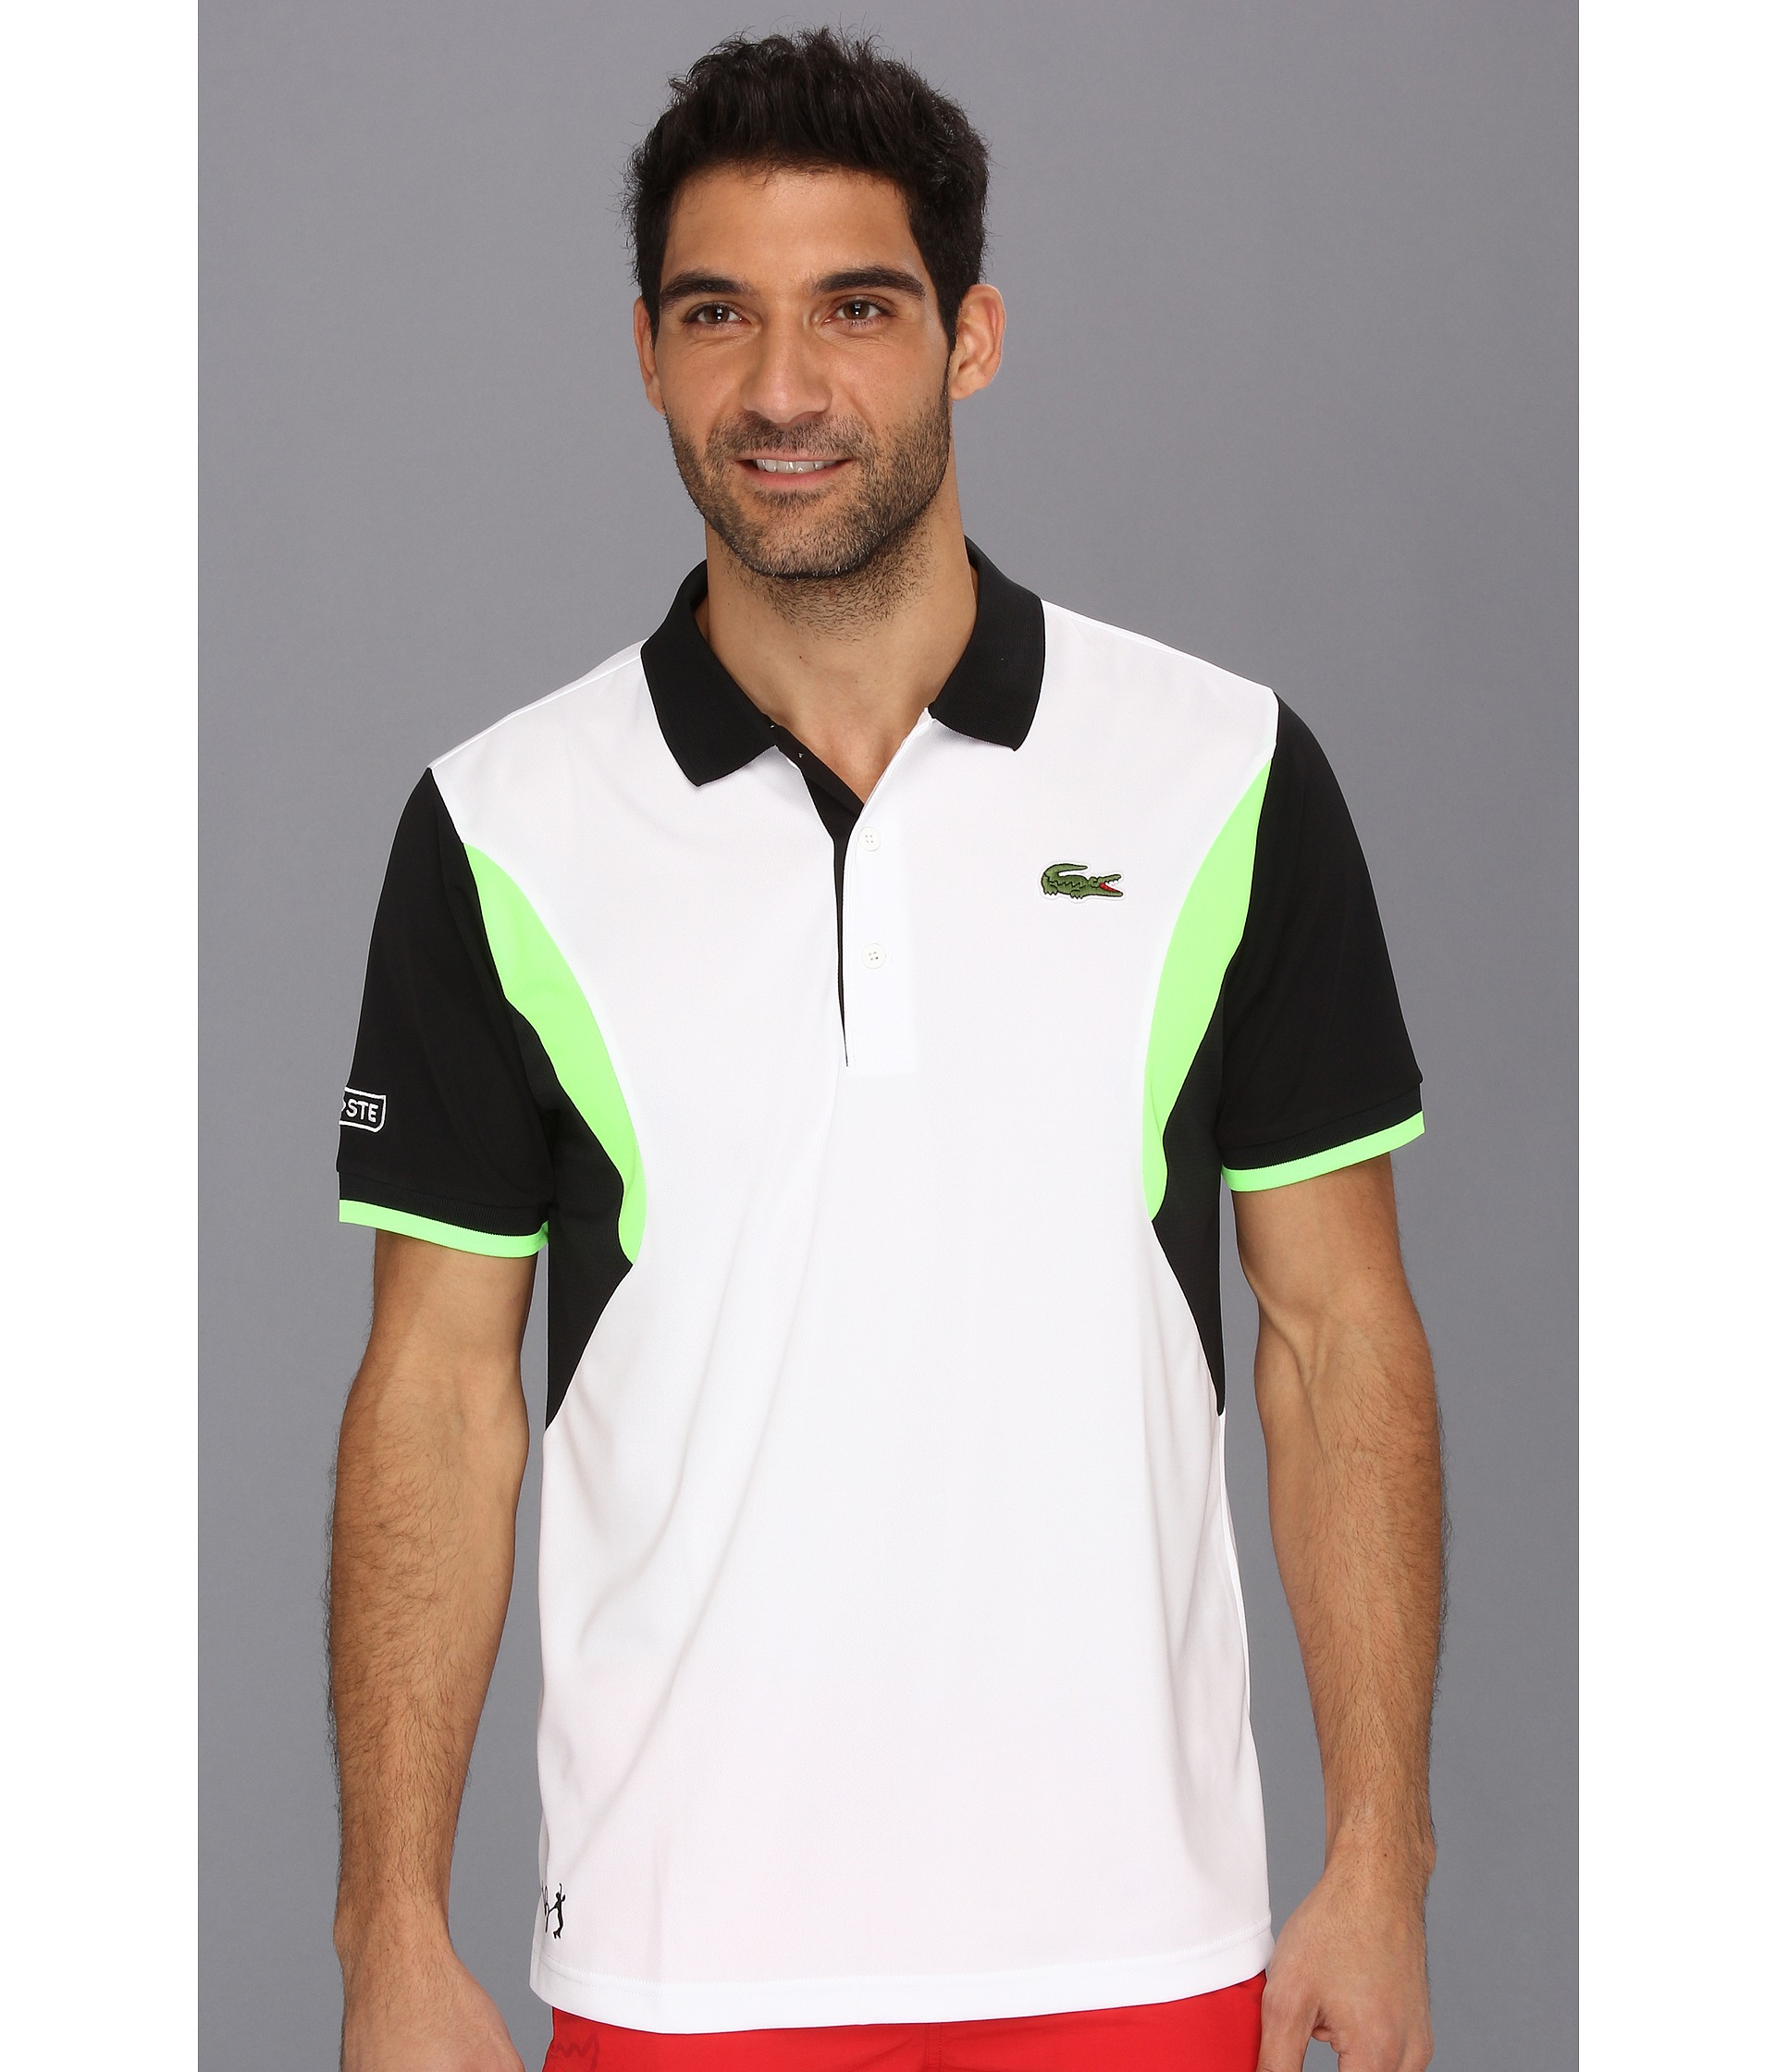 a955076b8e9c1 Lyst - Lacoste Andy Roddick Ultra Dry Geometric Color Block Polo in ...